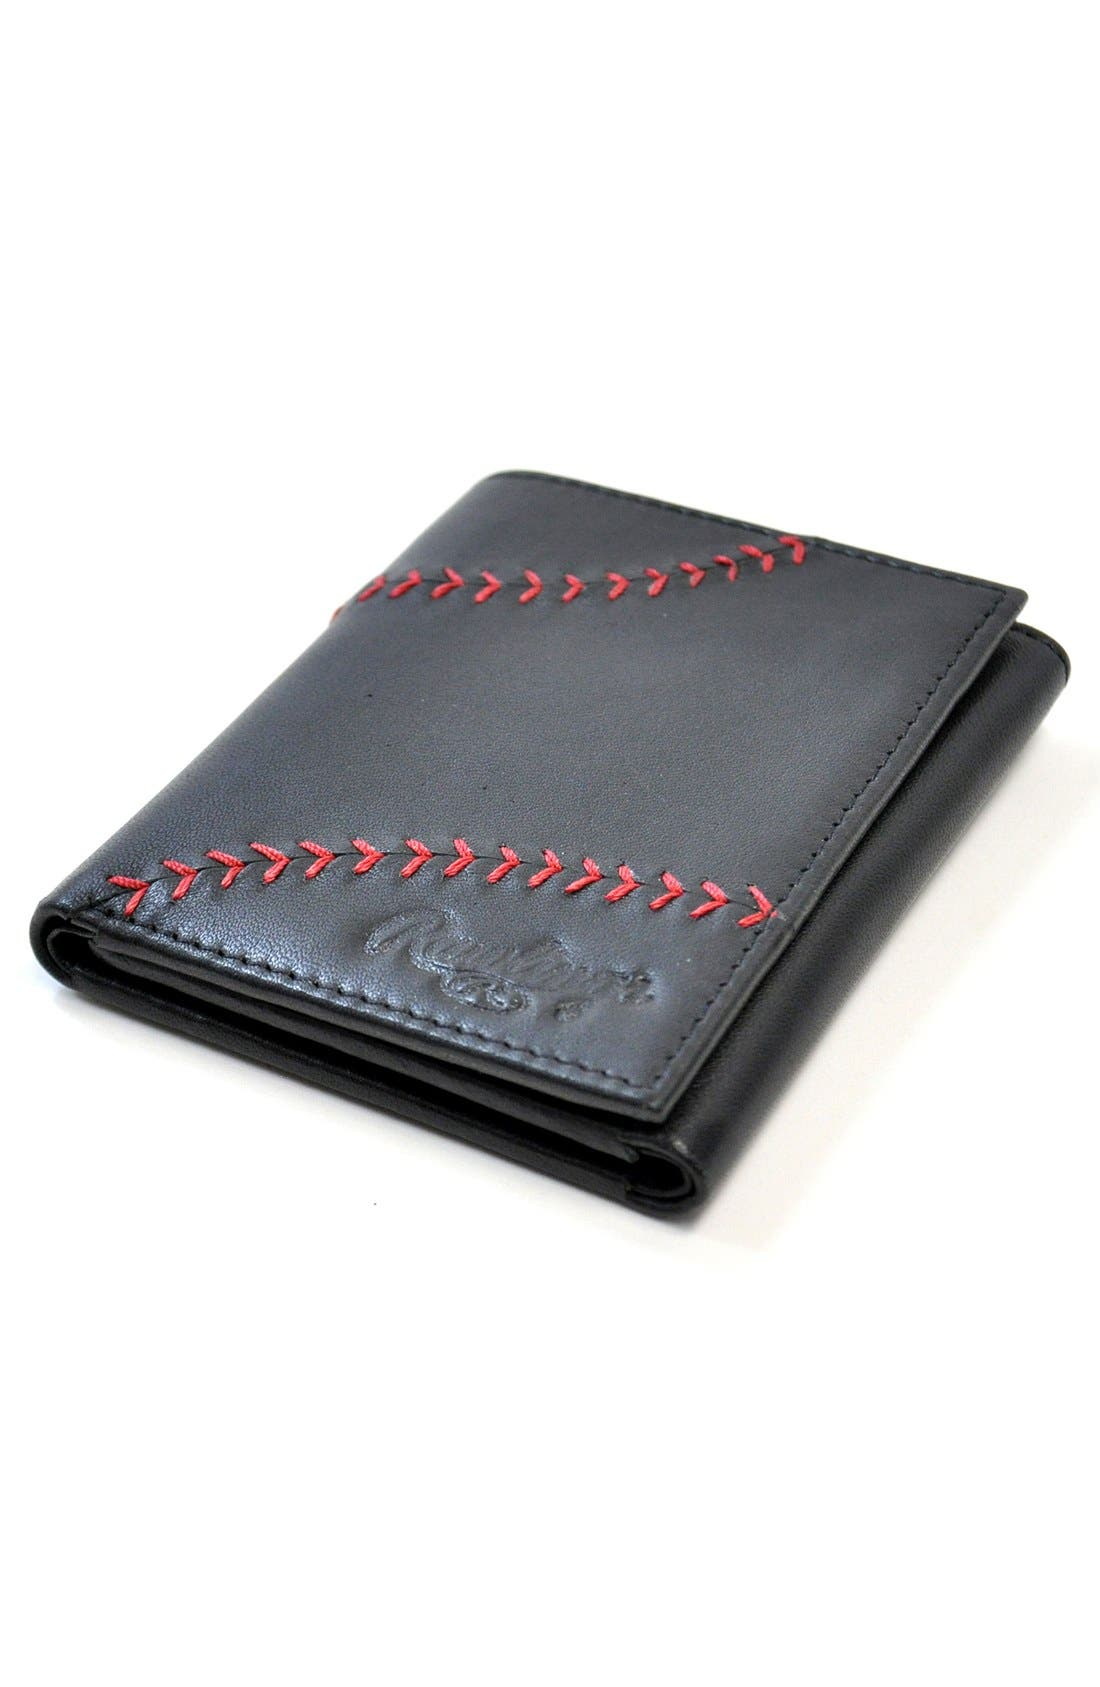 Baseball Stitch Leather Trifold Wallet,                             Alternate thumbnail 10, color,                             001